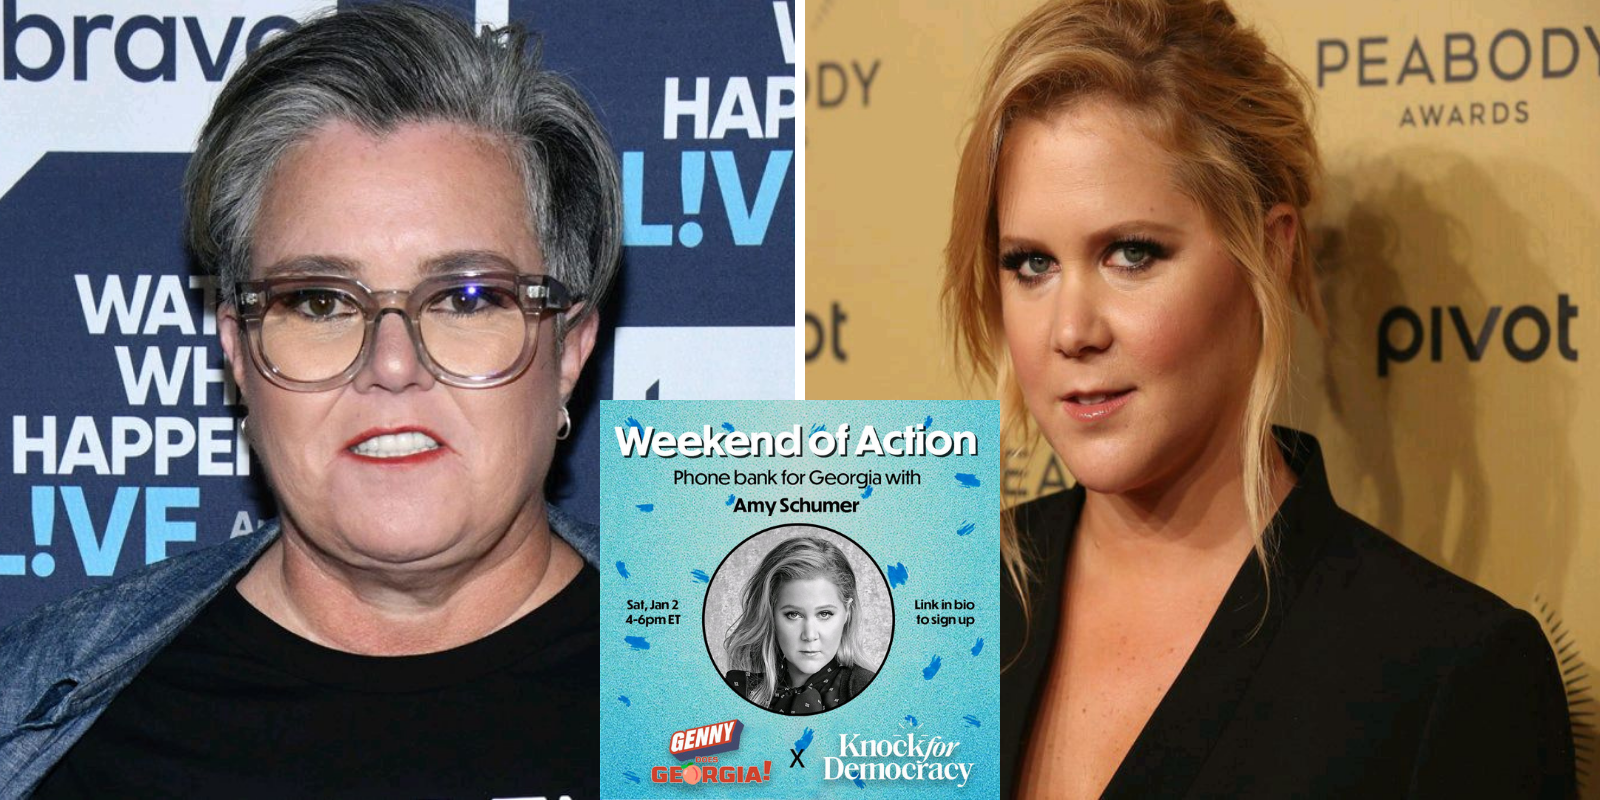 Amy Schumer and Rosie O'Donnell abandon Me Too principles to campaign for alleged abuser Raphael Warnock